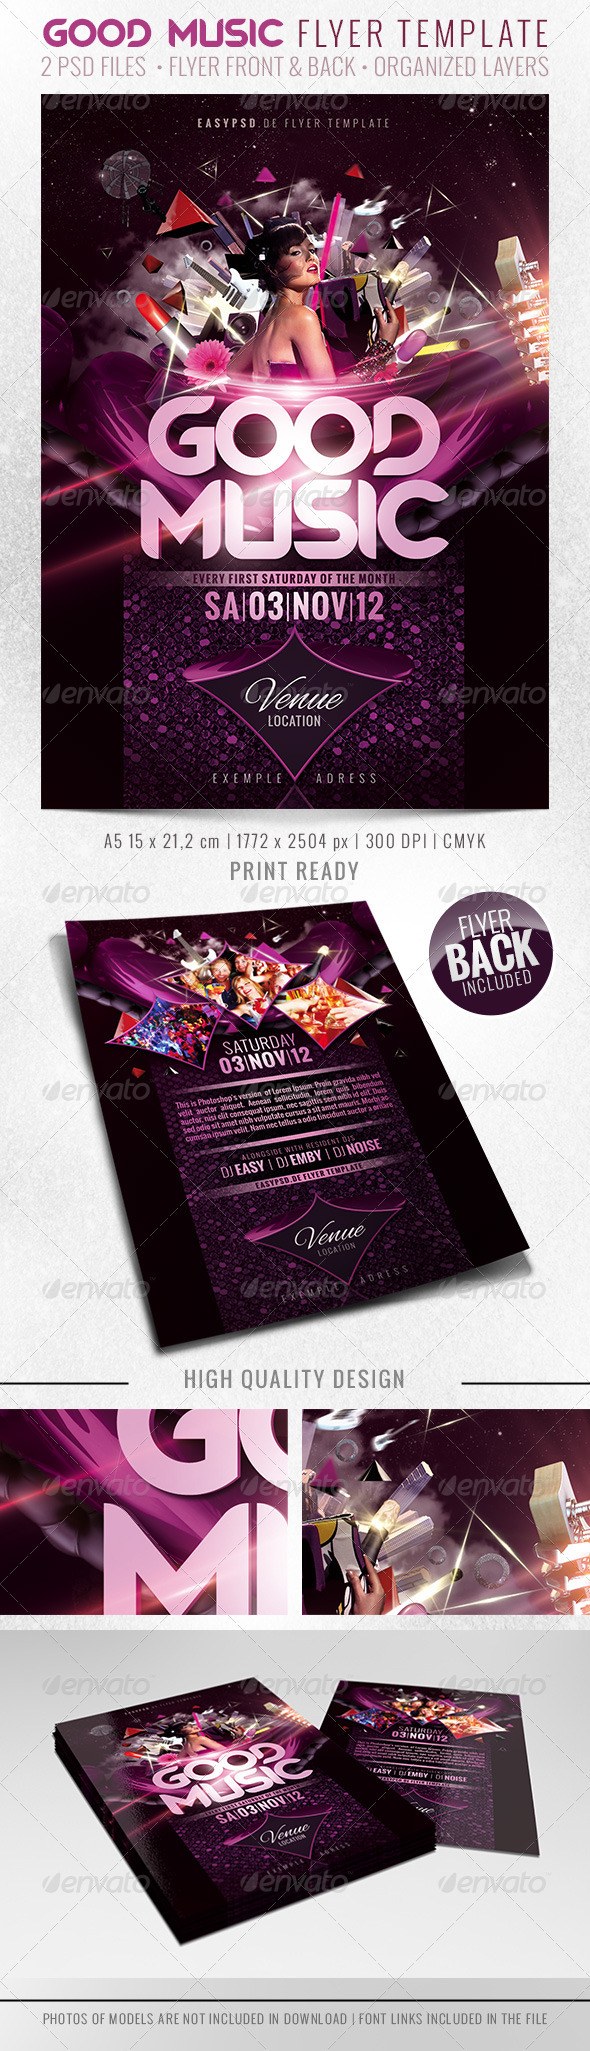 GOOD MUSIC Flyer Template - Clubs & Parties Events